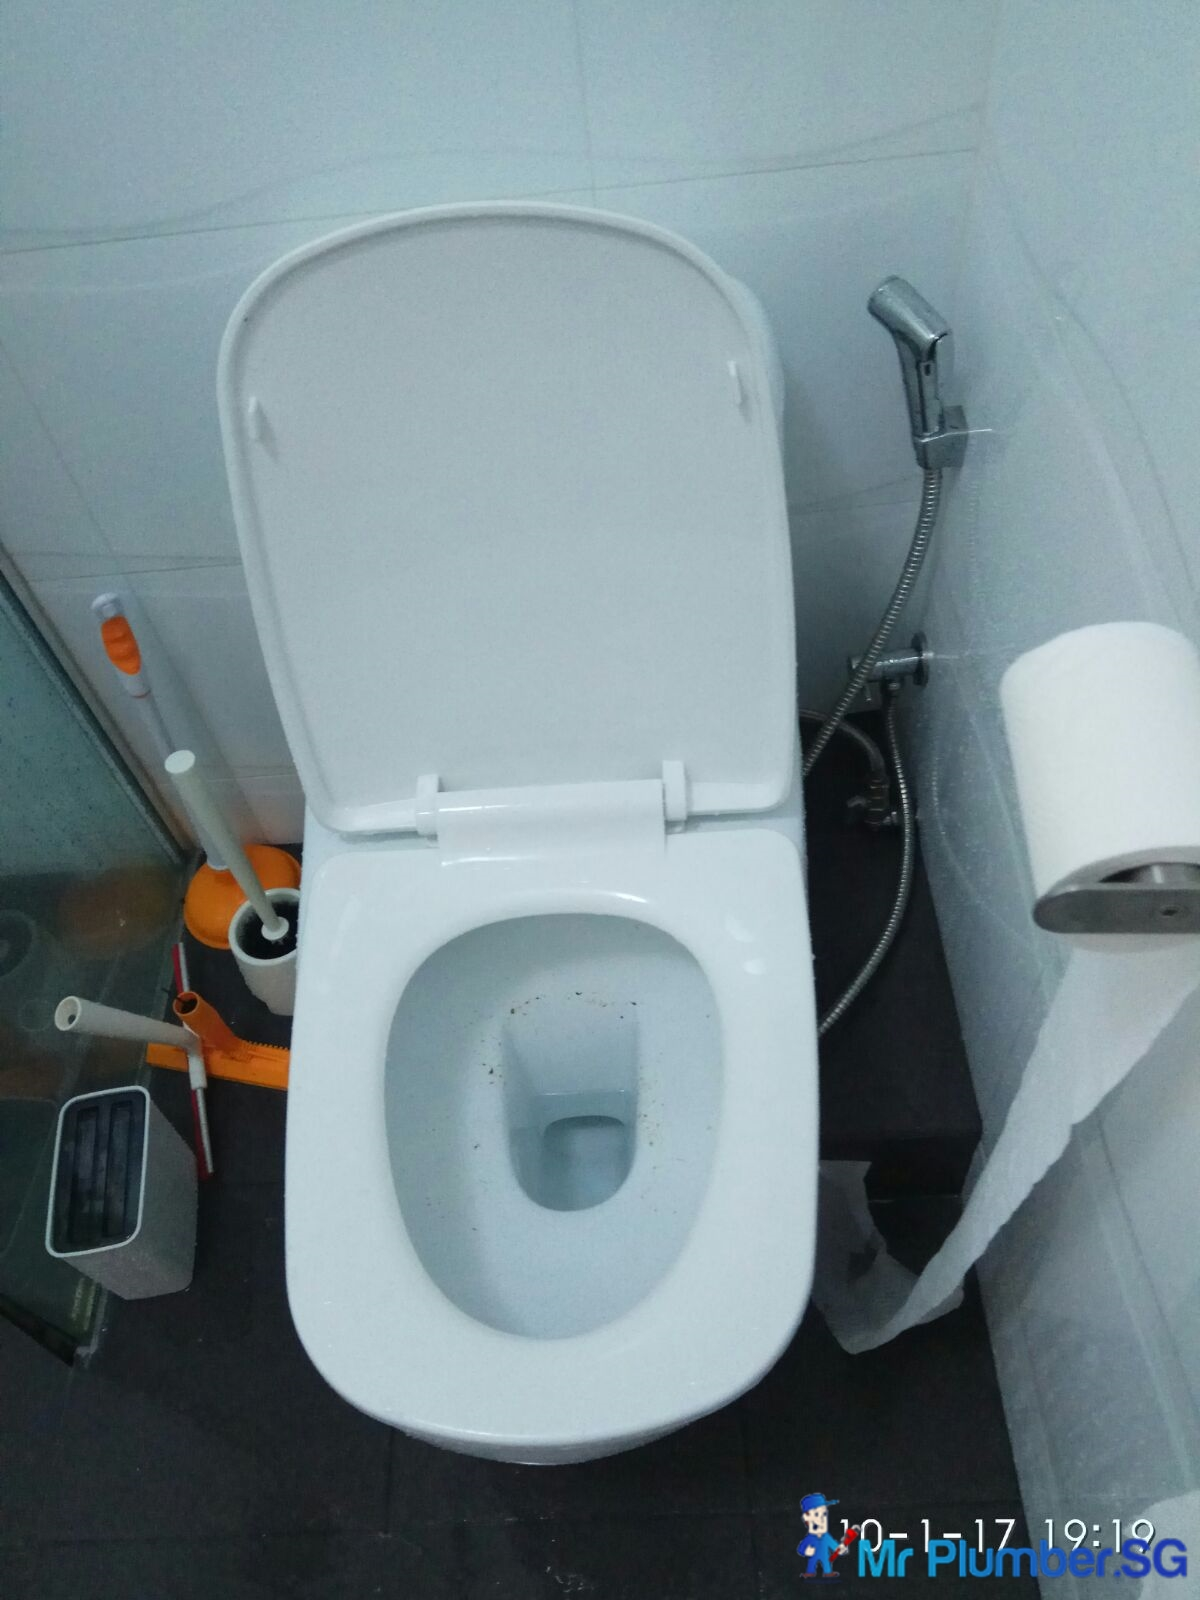 We Are The Highly Recommended Plumber Singapore With Many Hy Customers And Reviews Over Years On Google Facebook